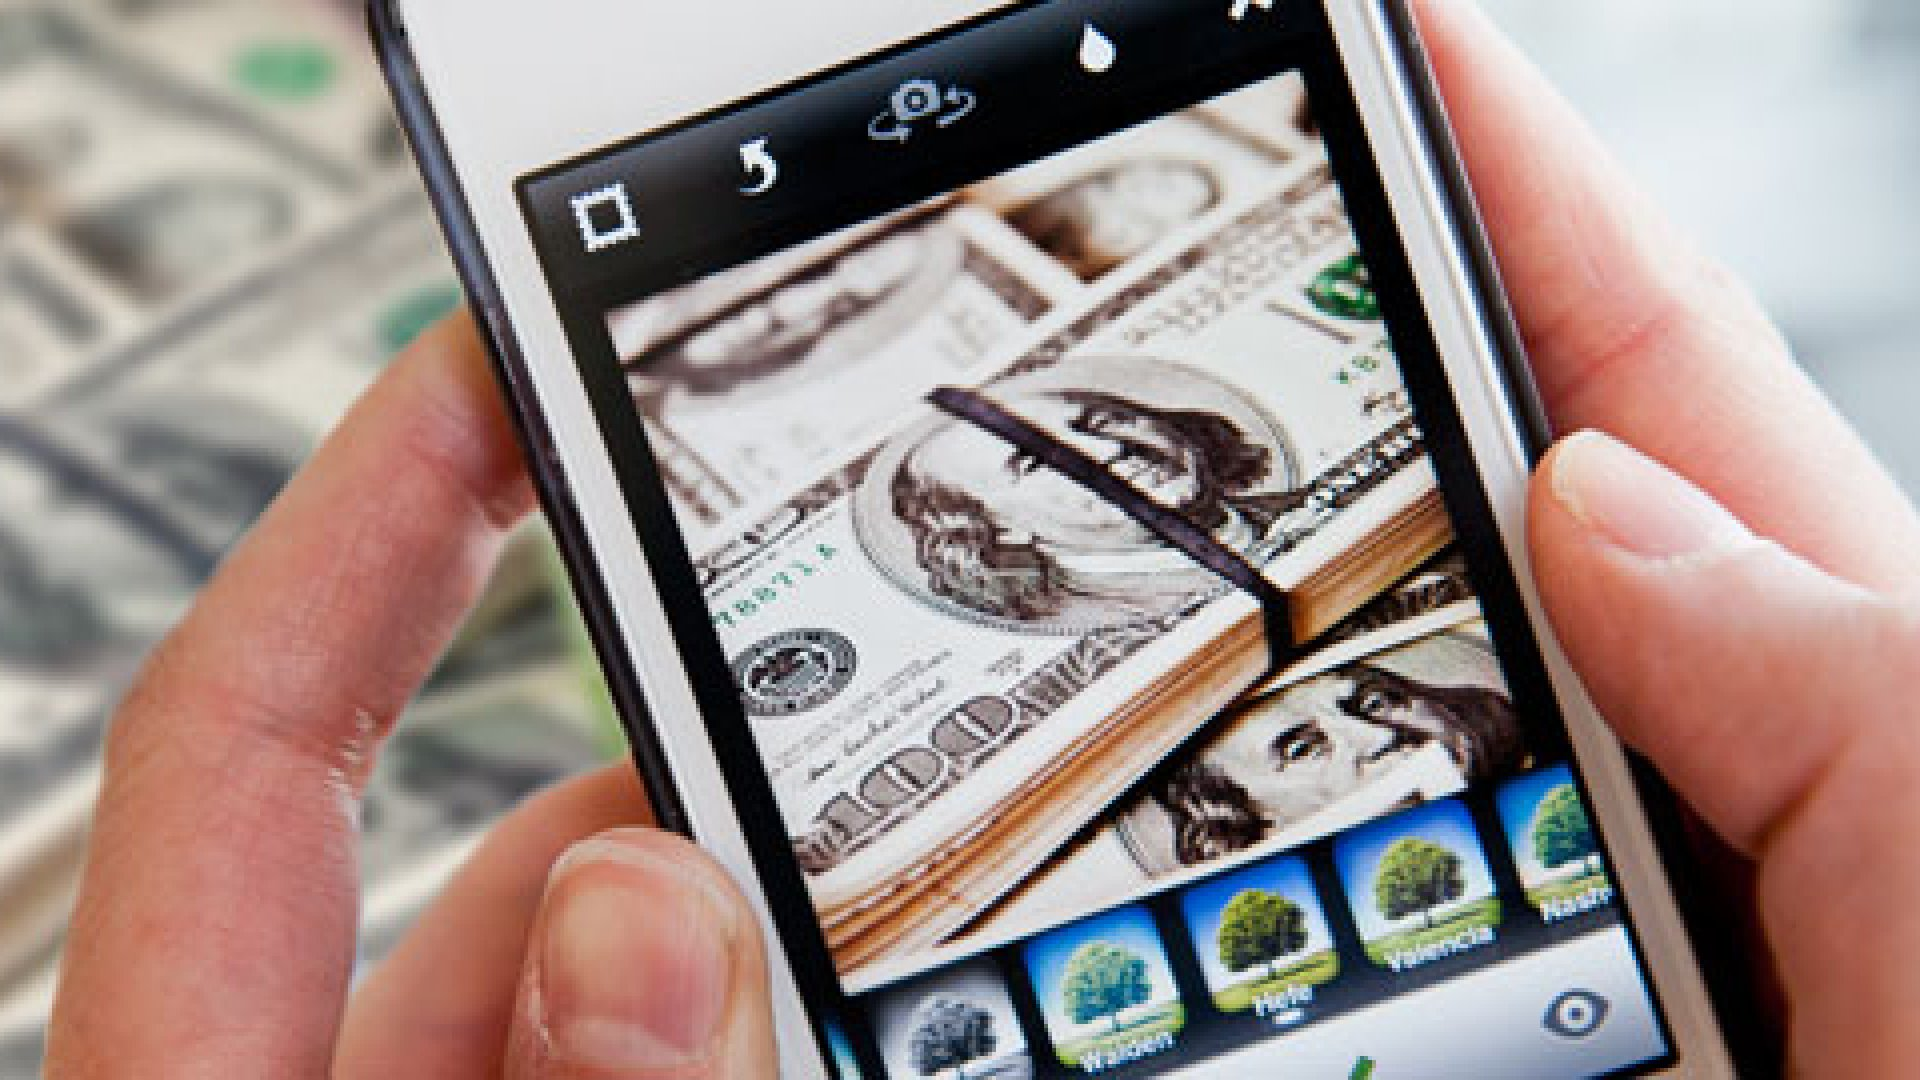 Deal of the Year: Facebook Buys Instagram